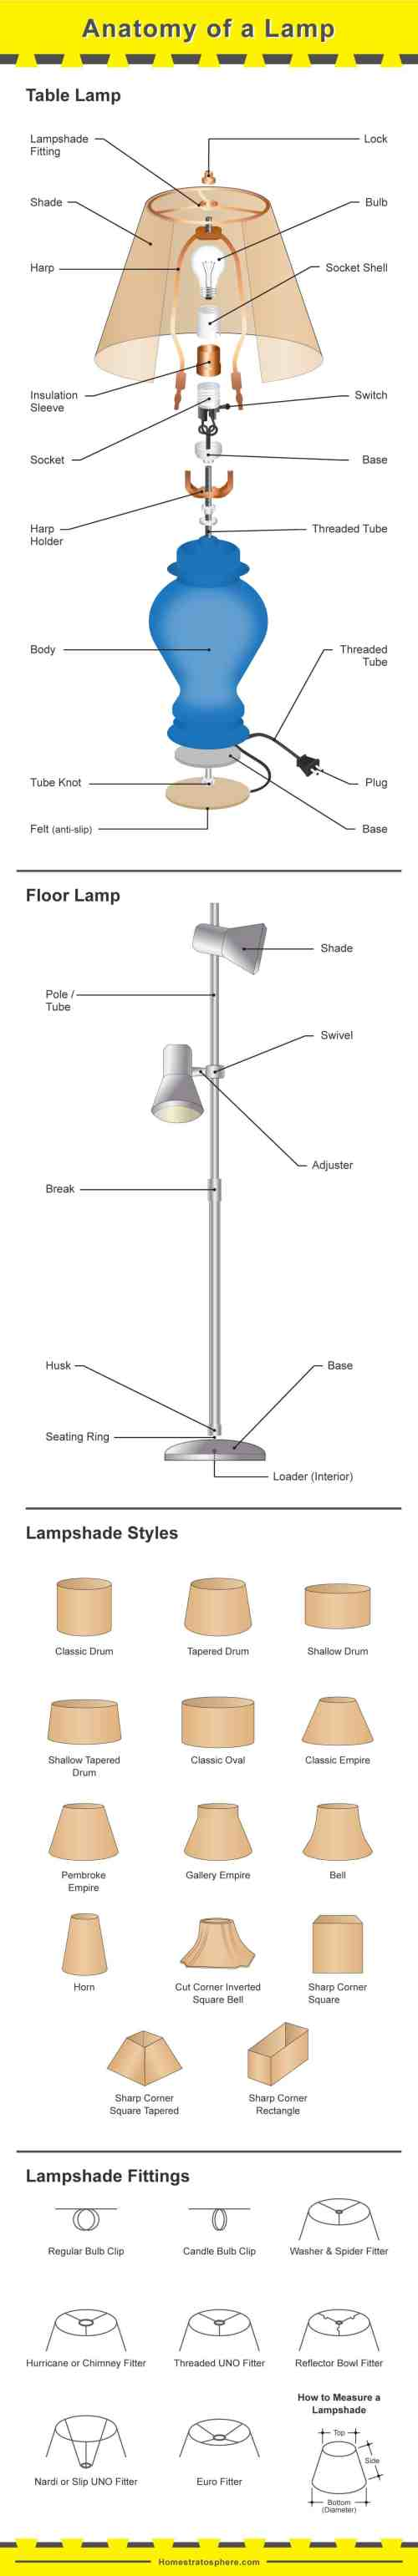 small resolution of diagram showing the parts of a table lamp and floor lamp